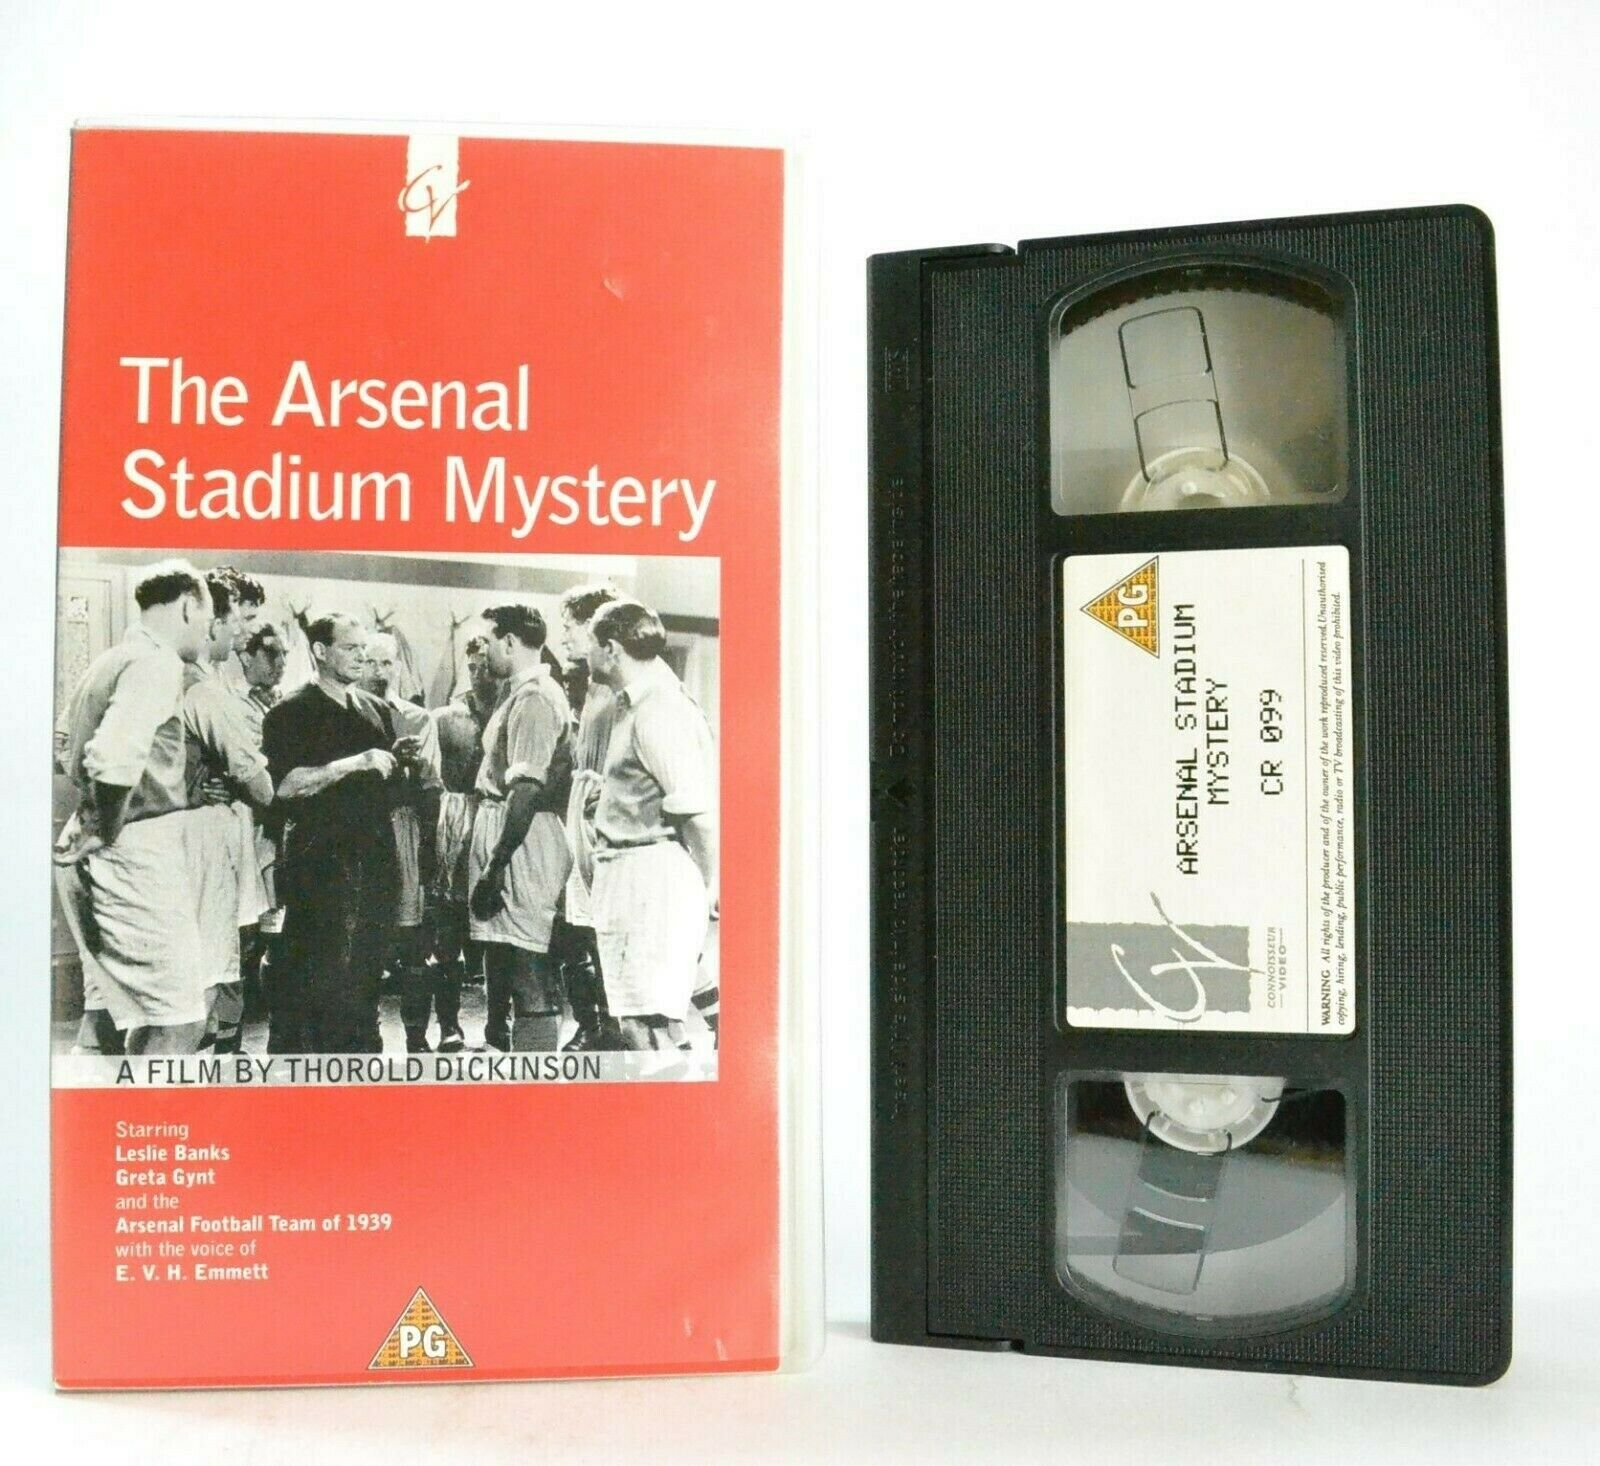 The Arsenal Stadium Mystery: A Thorold Dickinson Film - Football - Sports - VHS